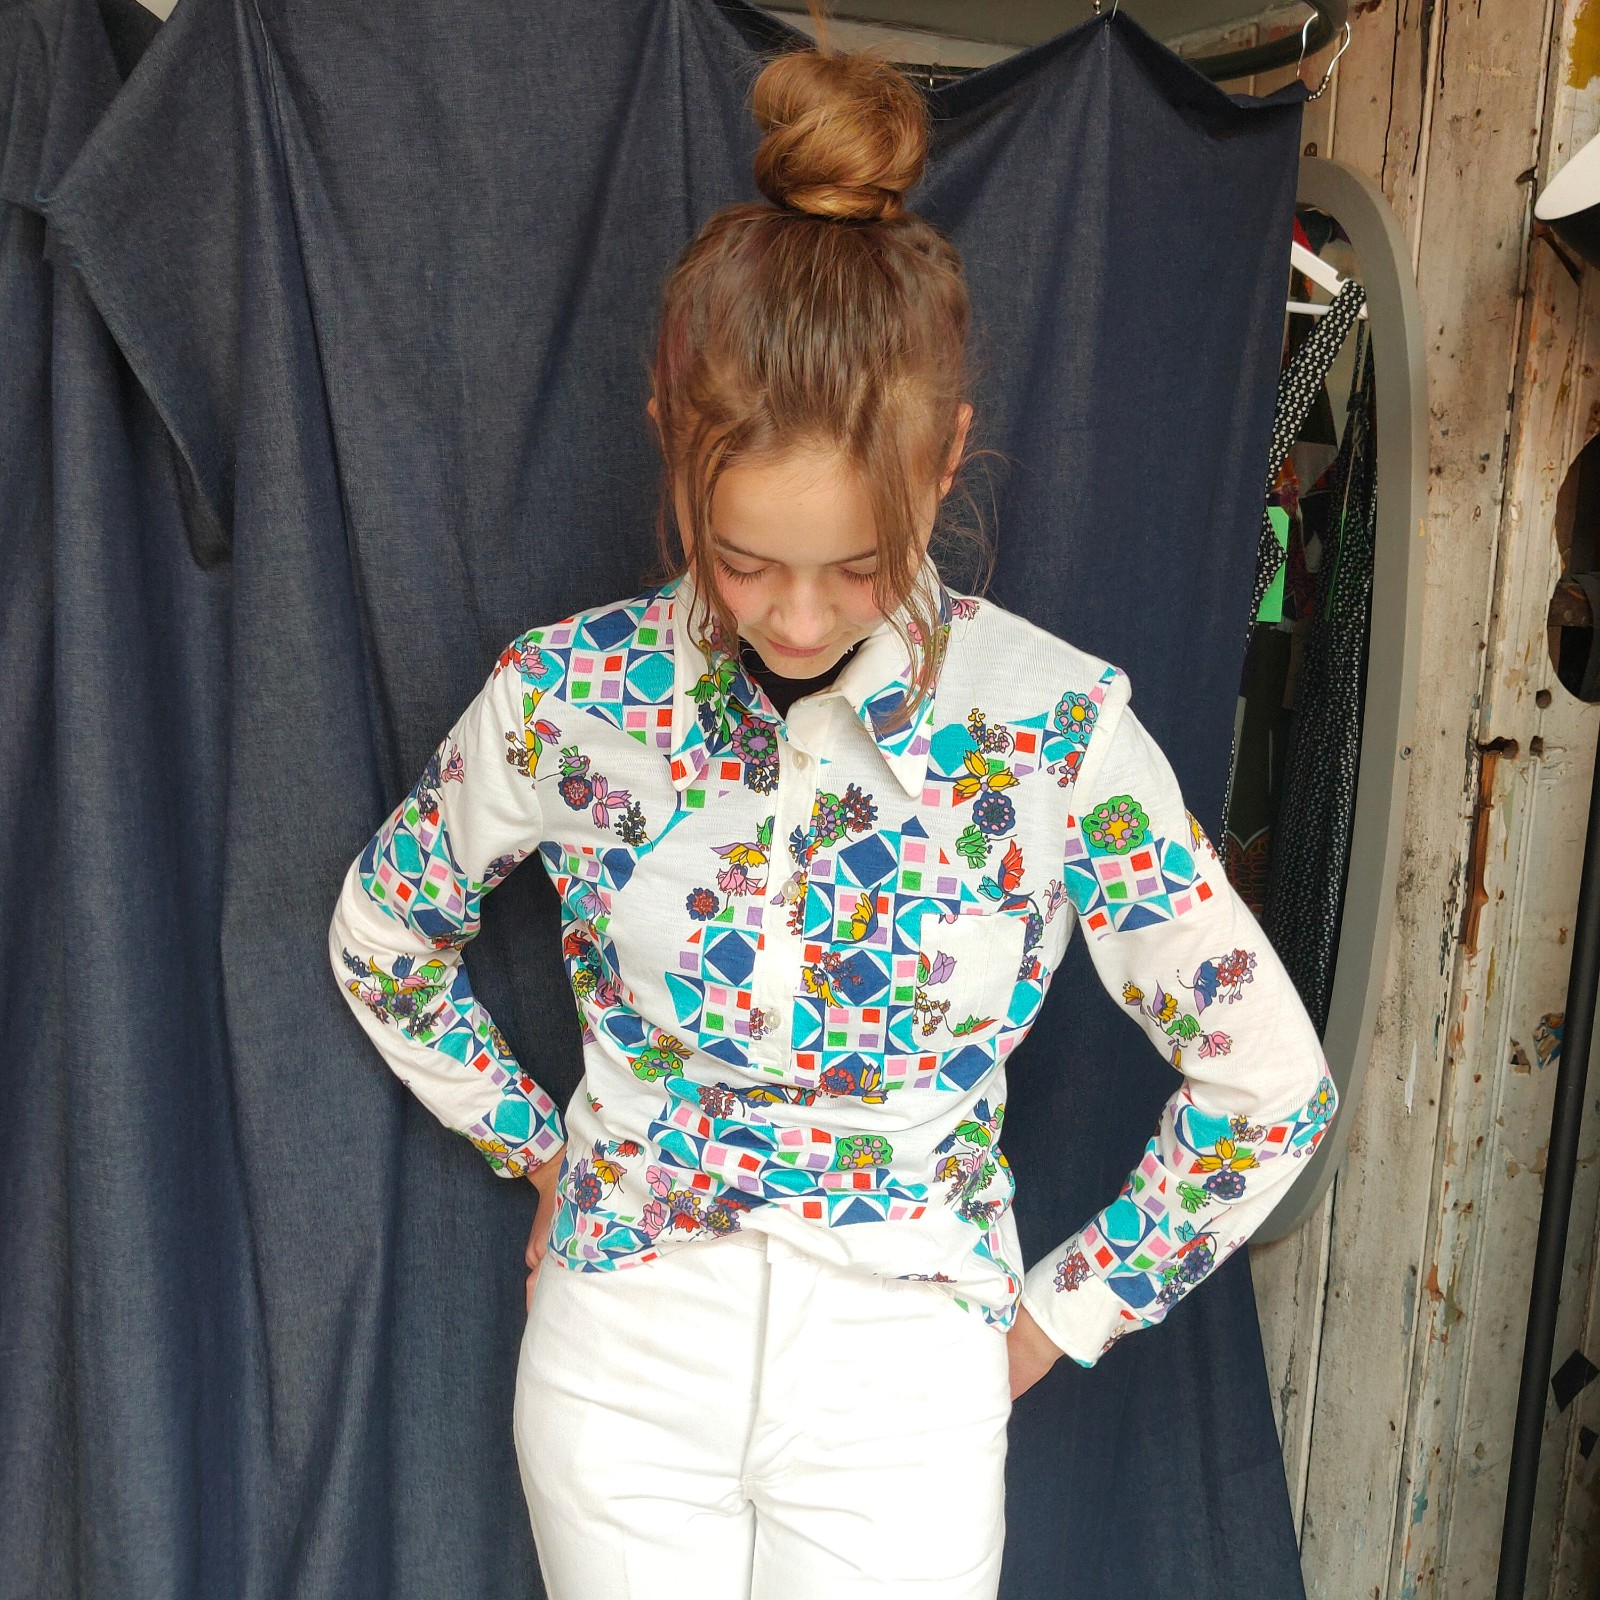 Vintage- Printed 70s jersey shirt